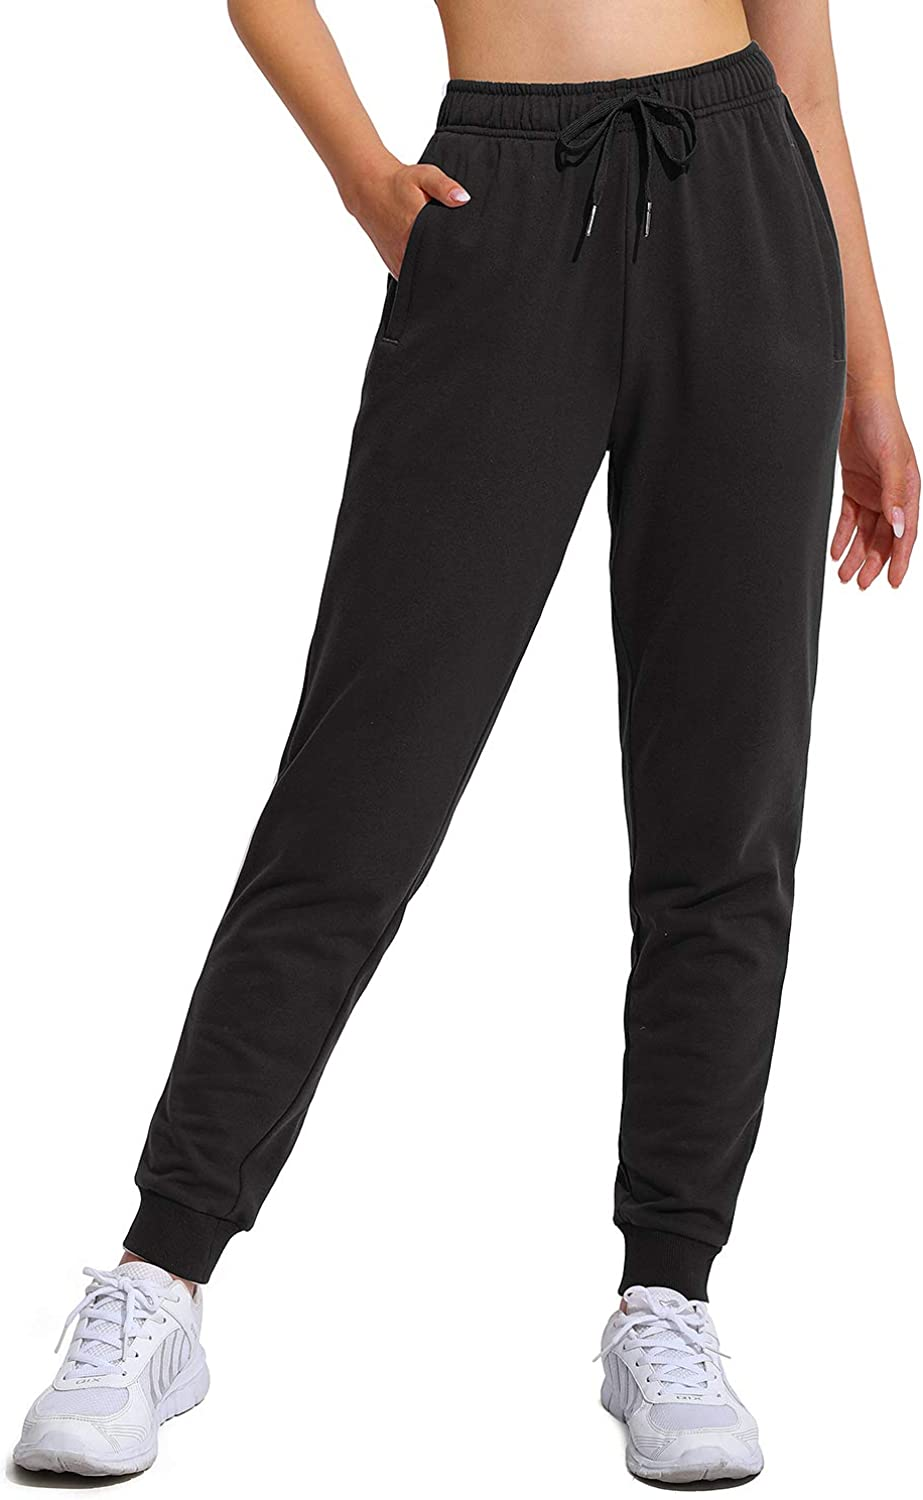 Mail order cheap WALK FIELD Cotton Sweatpants for with Women Pockets Zipper Tucson Mall Draws